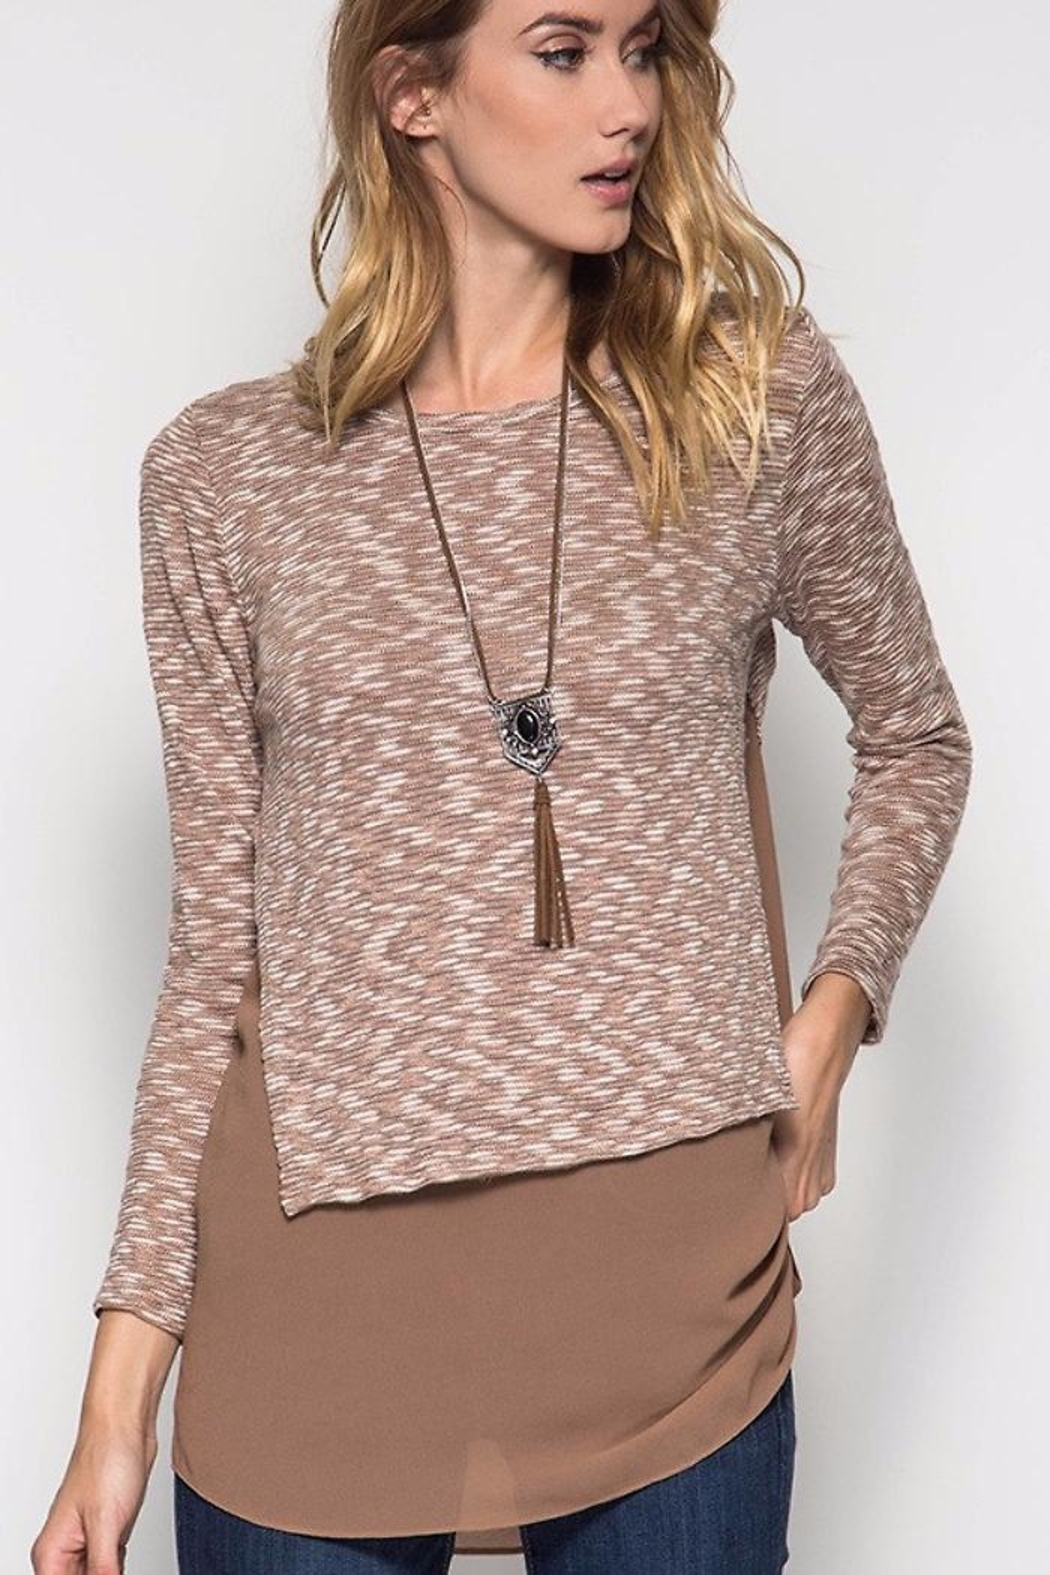 People Outfitter Lily's Knit Tunic - Main Image